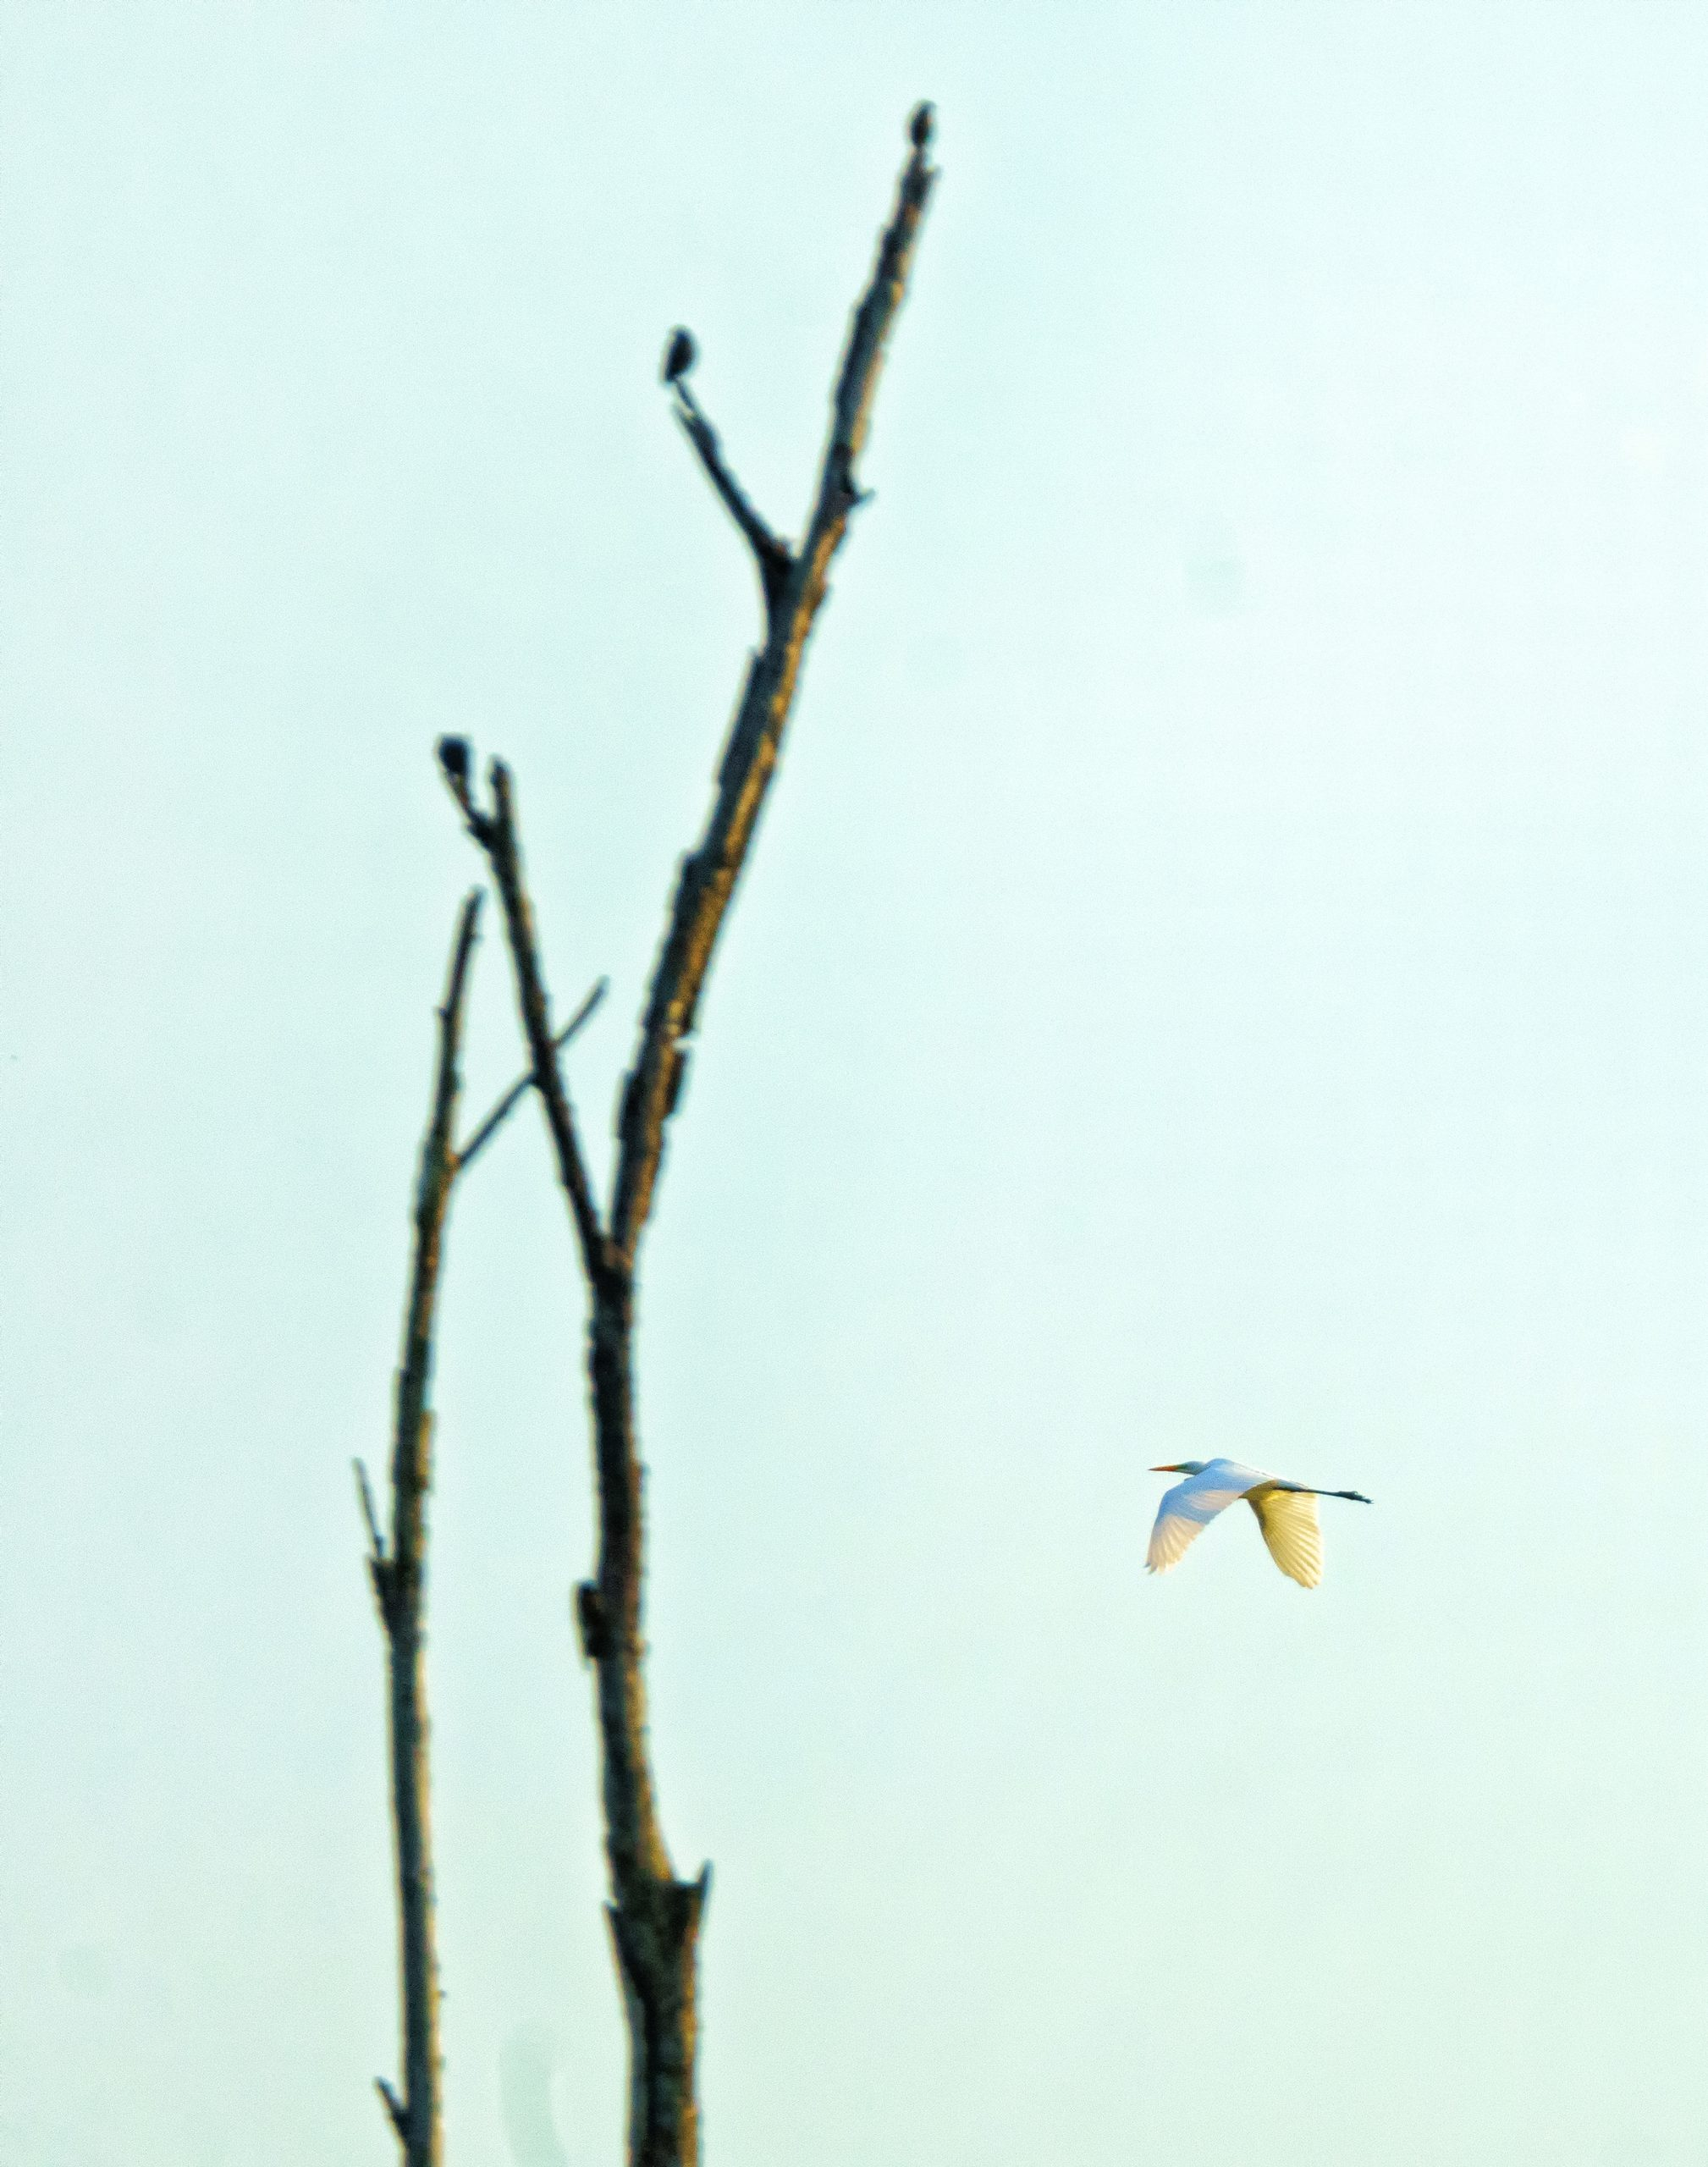 A large white bird flies right to left. An out-of-focus tree is to the left of the frame.